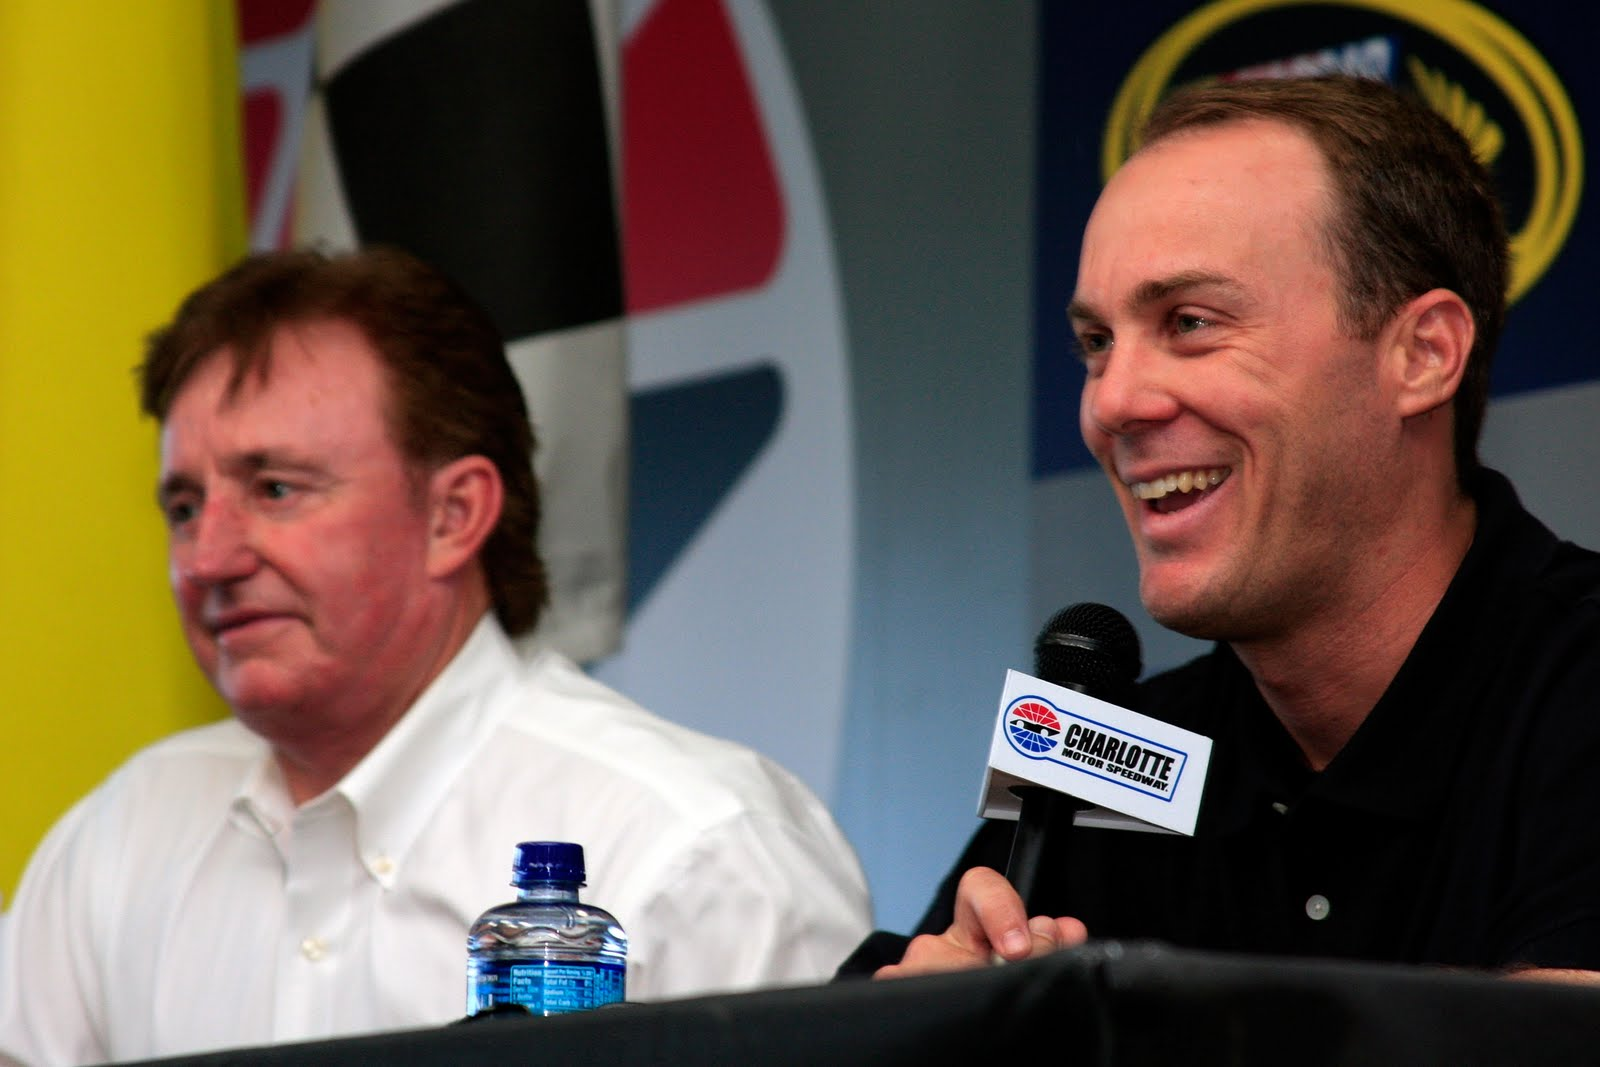 Racing and Kevin Harvick